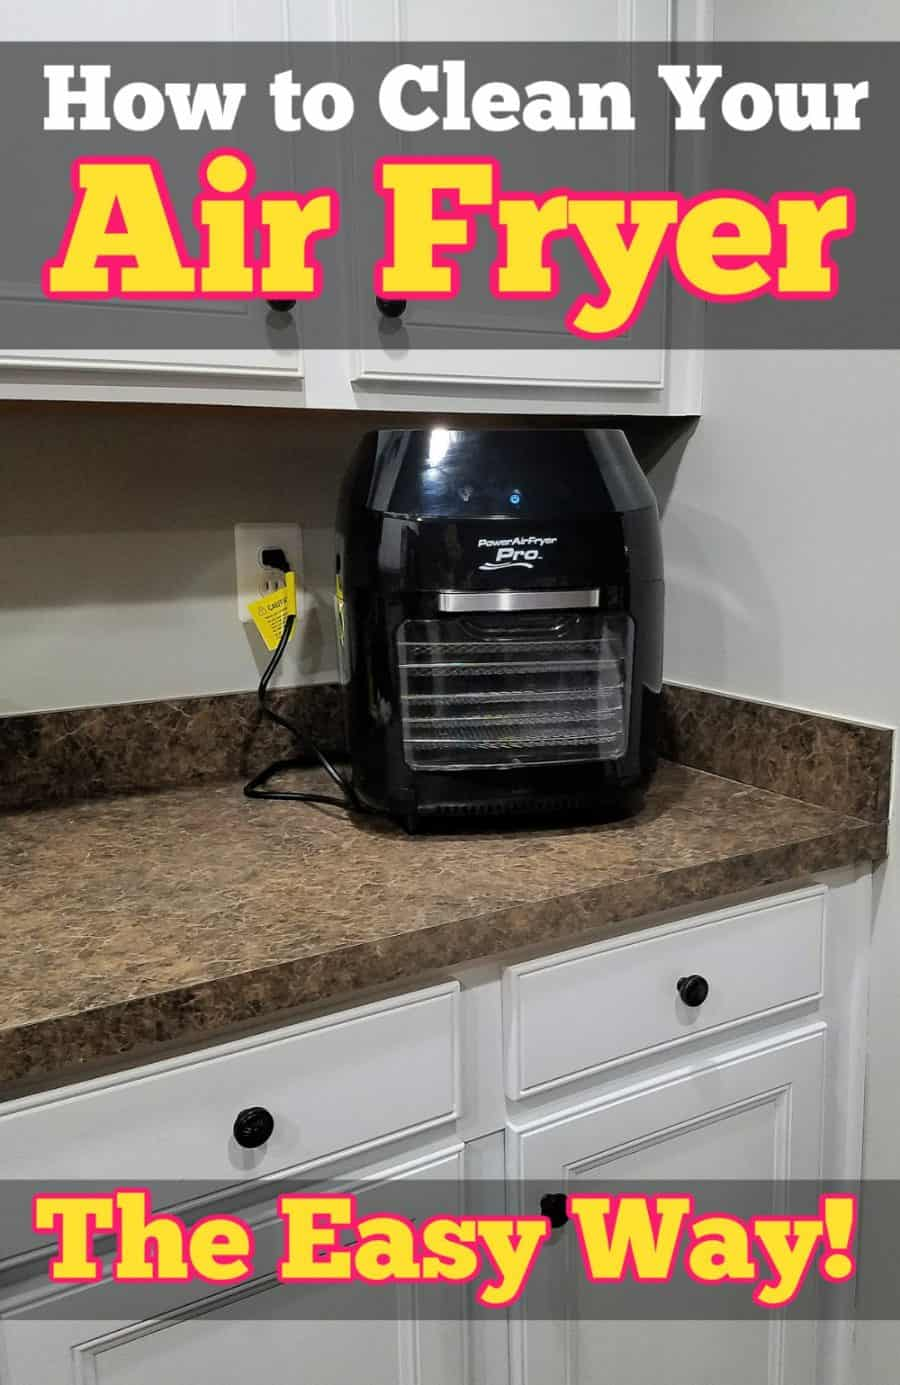 How to Clean Your Air Fryer the Easy Way